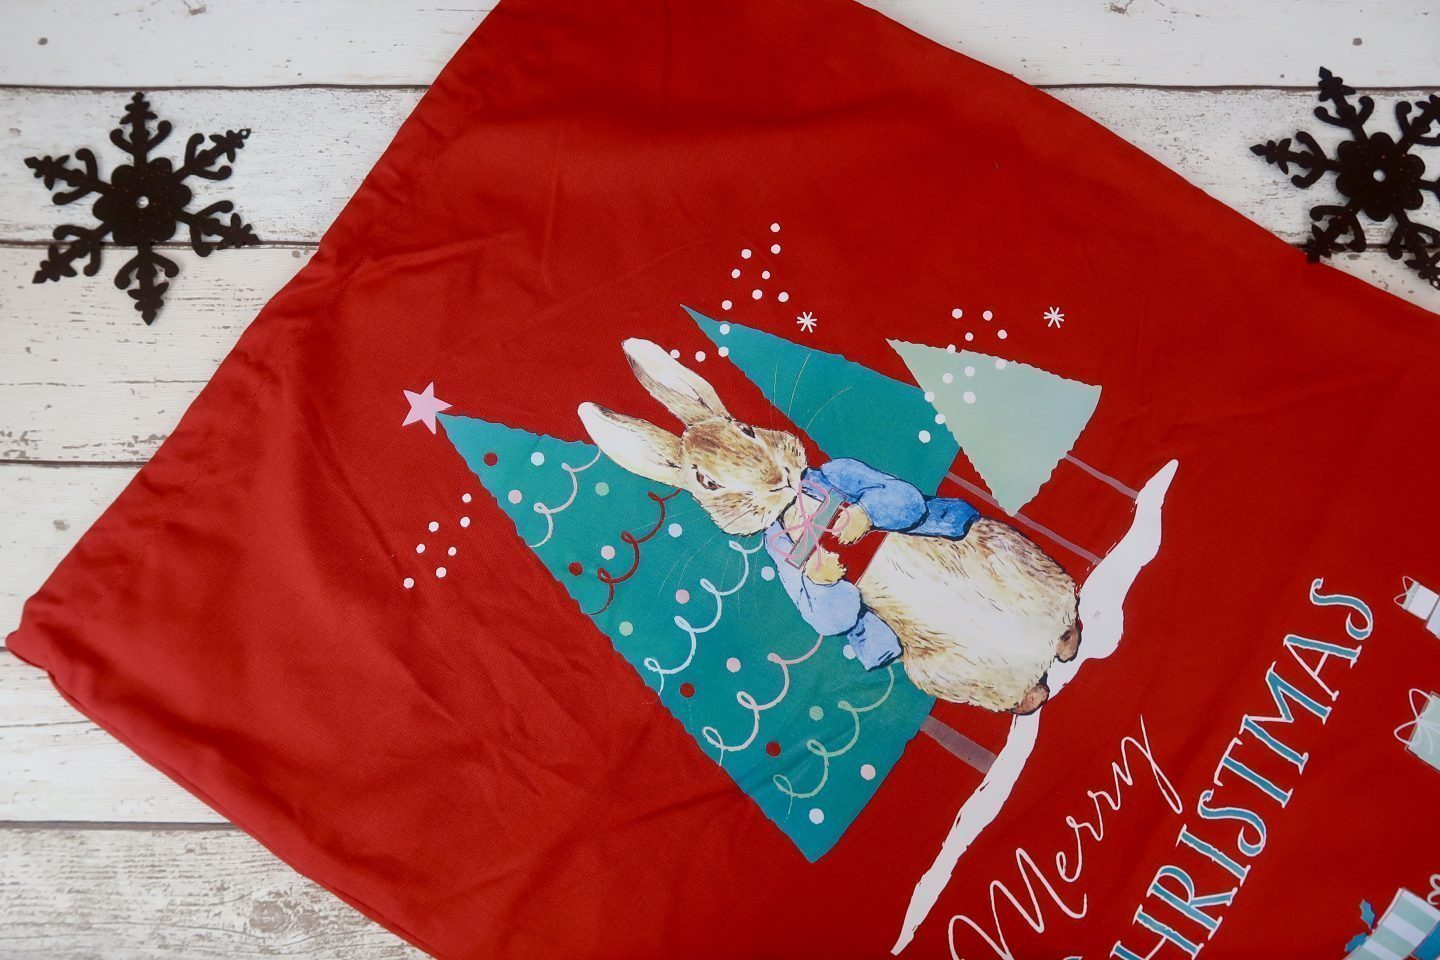 A red sack with Peter Rabbit on it and 3 chirstmas trees